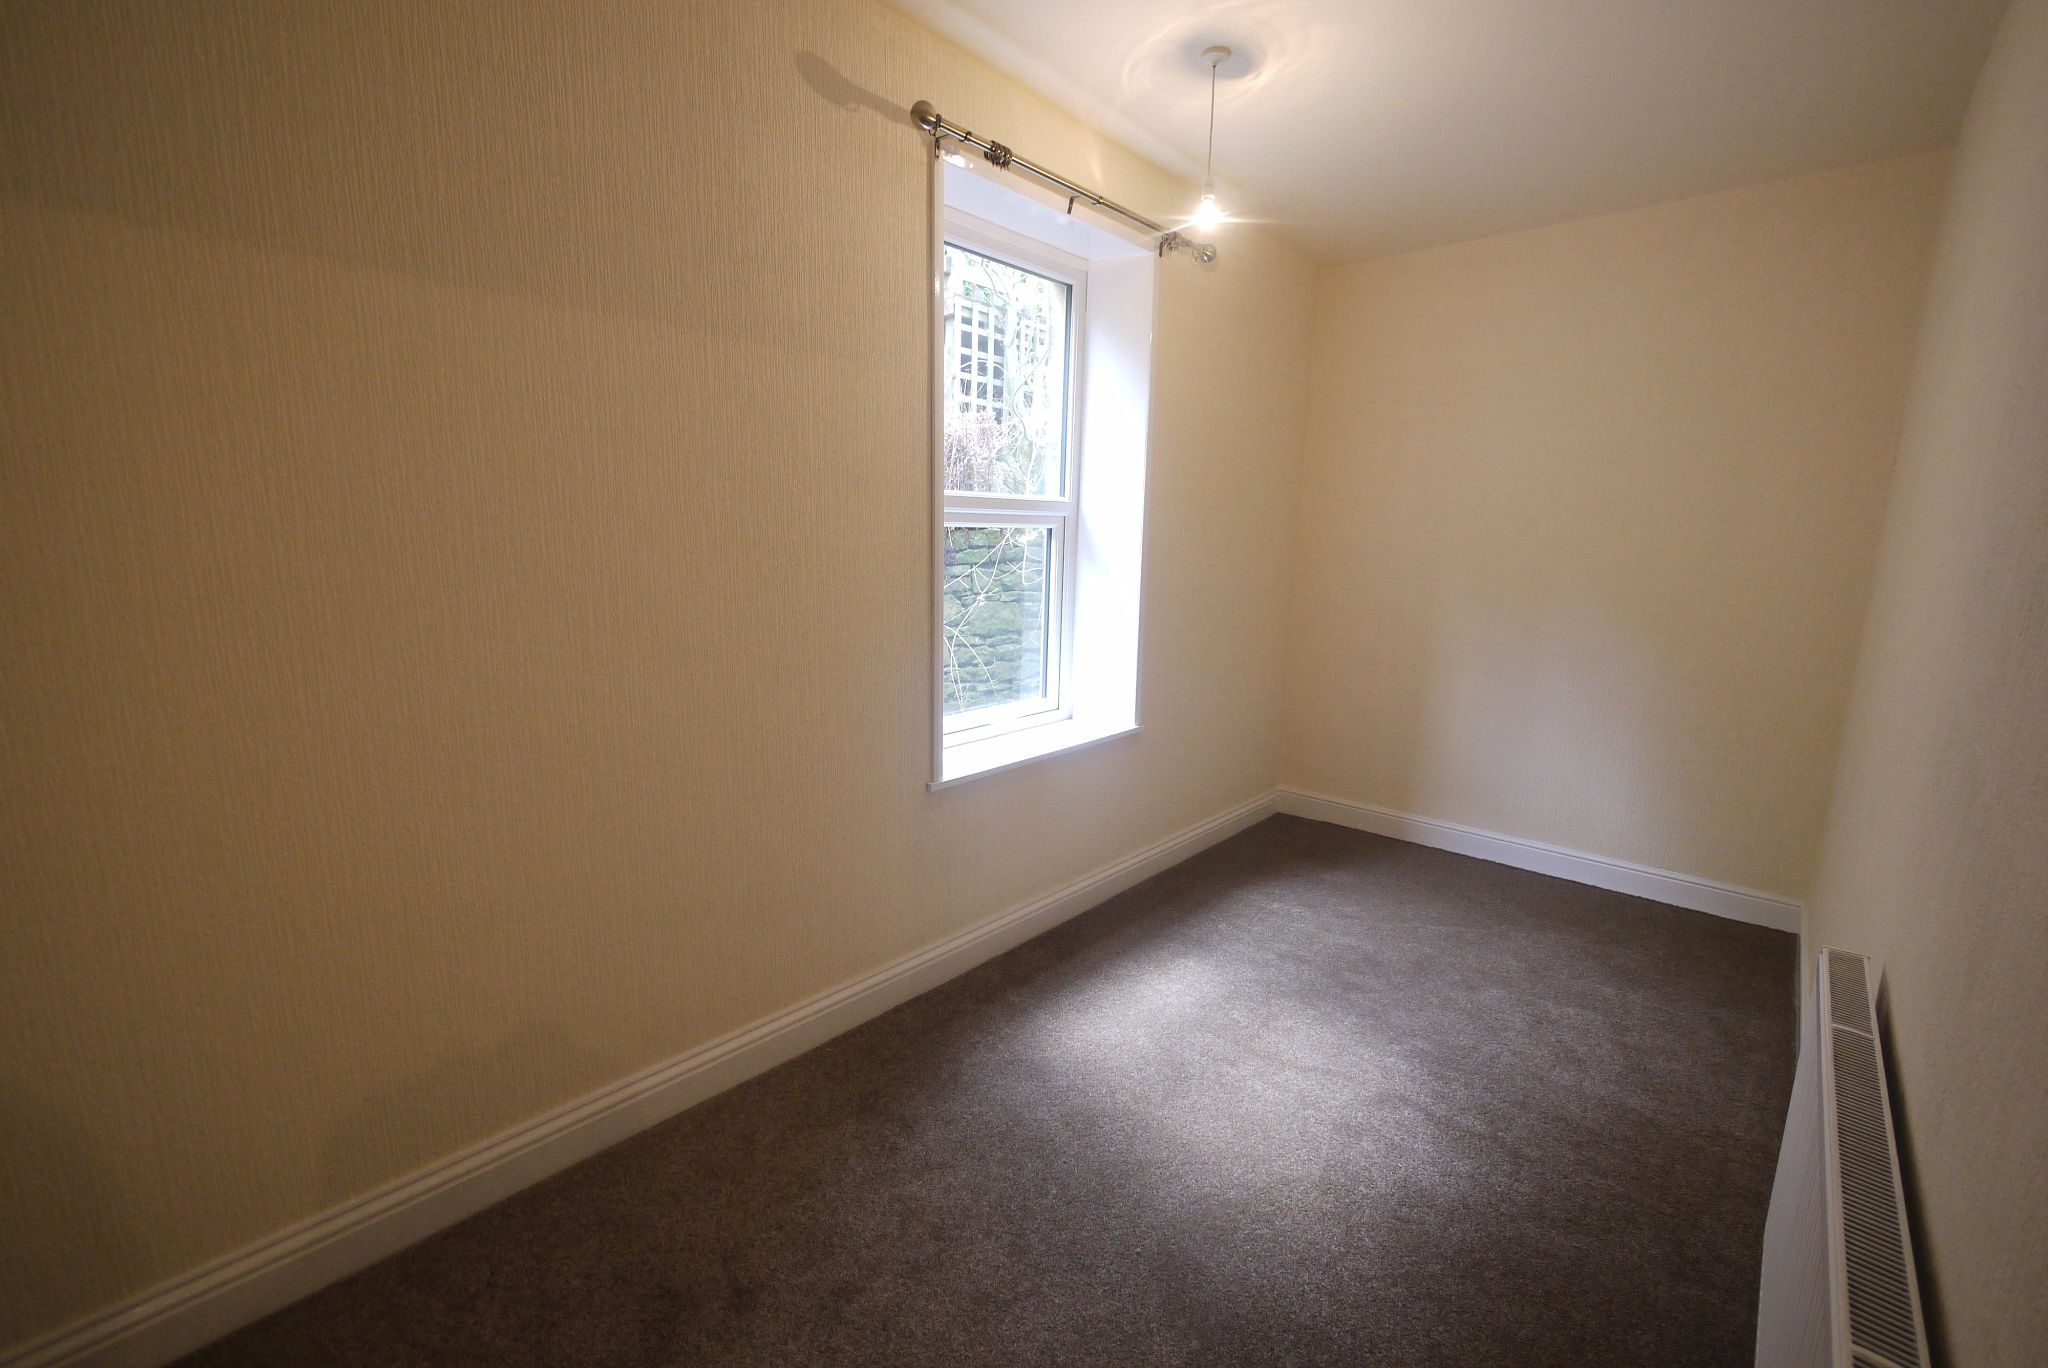 2 bedroom mid terraced house To Let in Halifax - Bedroom2.